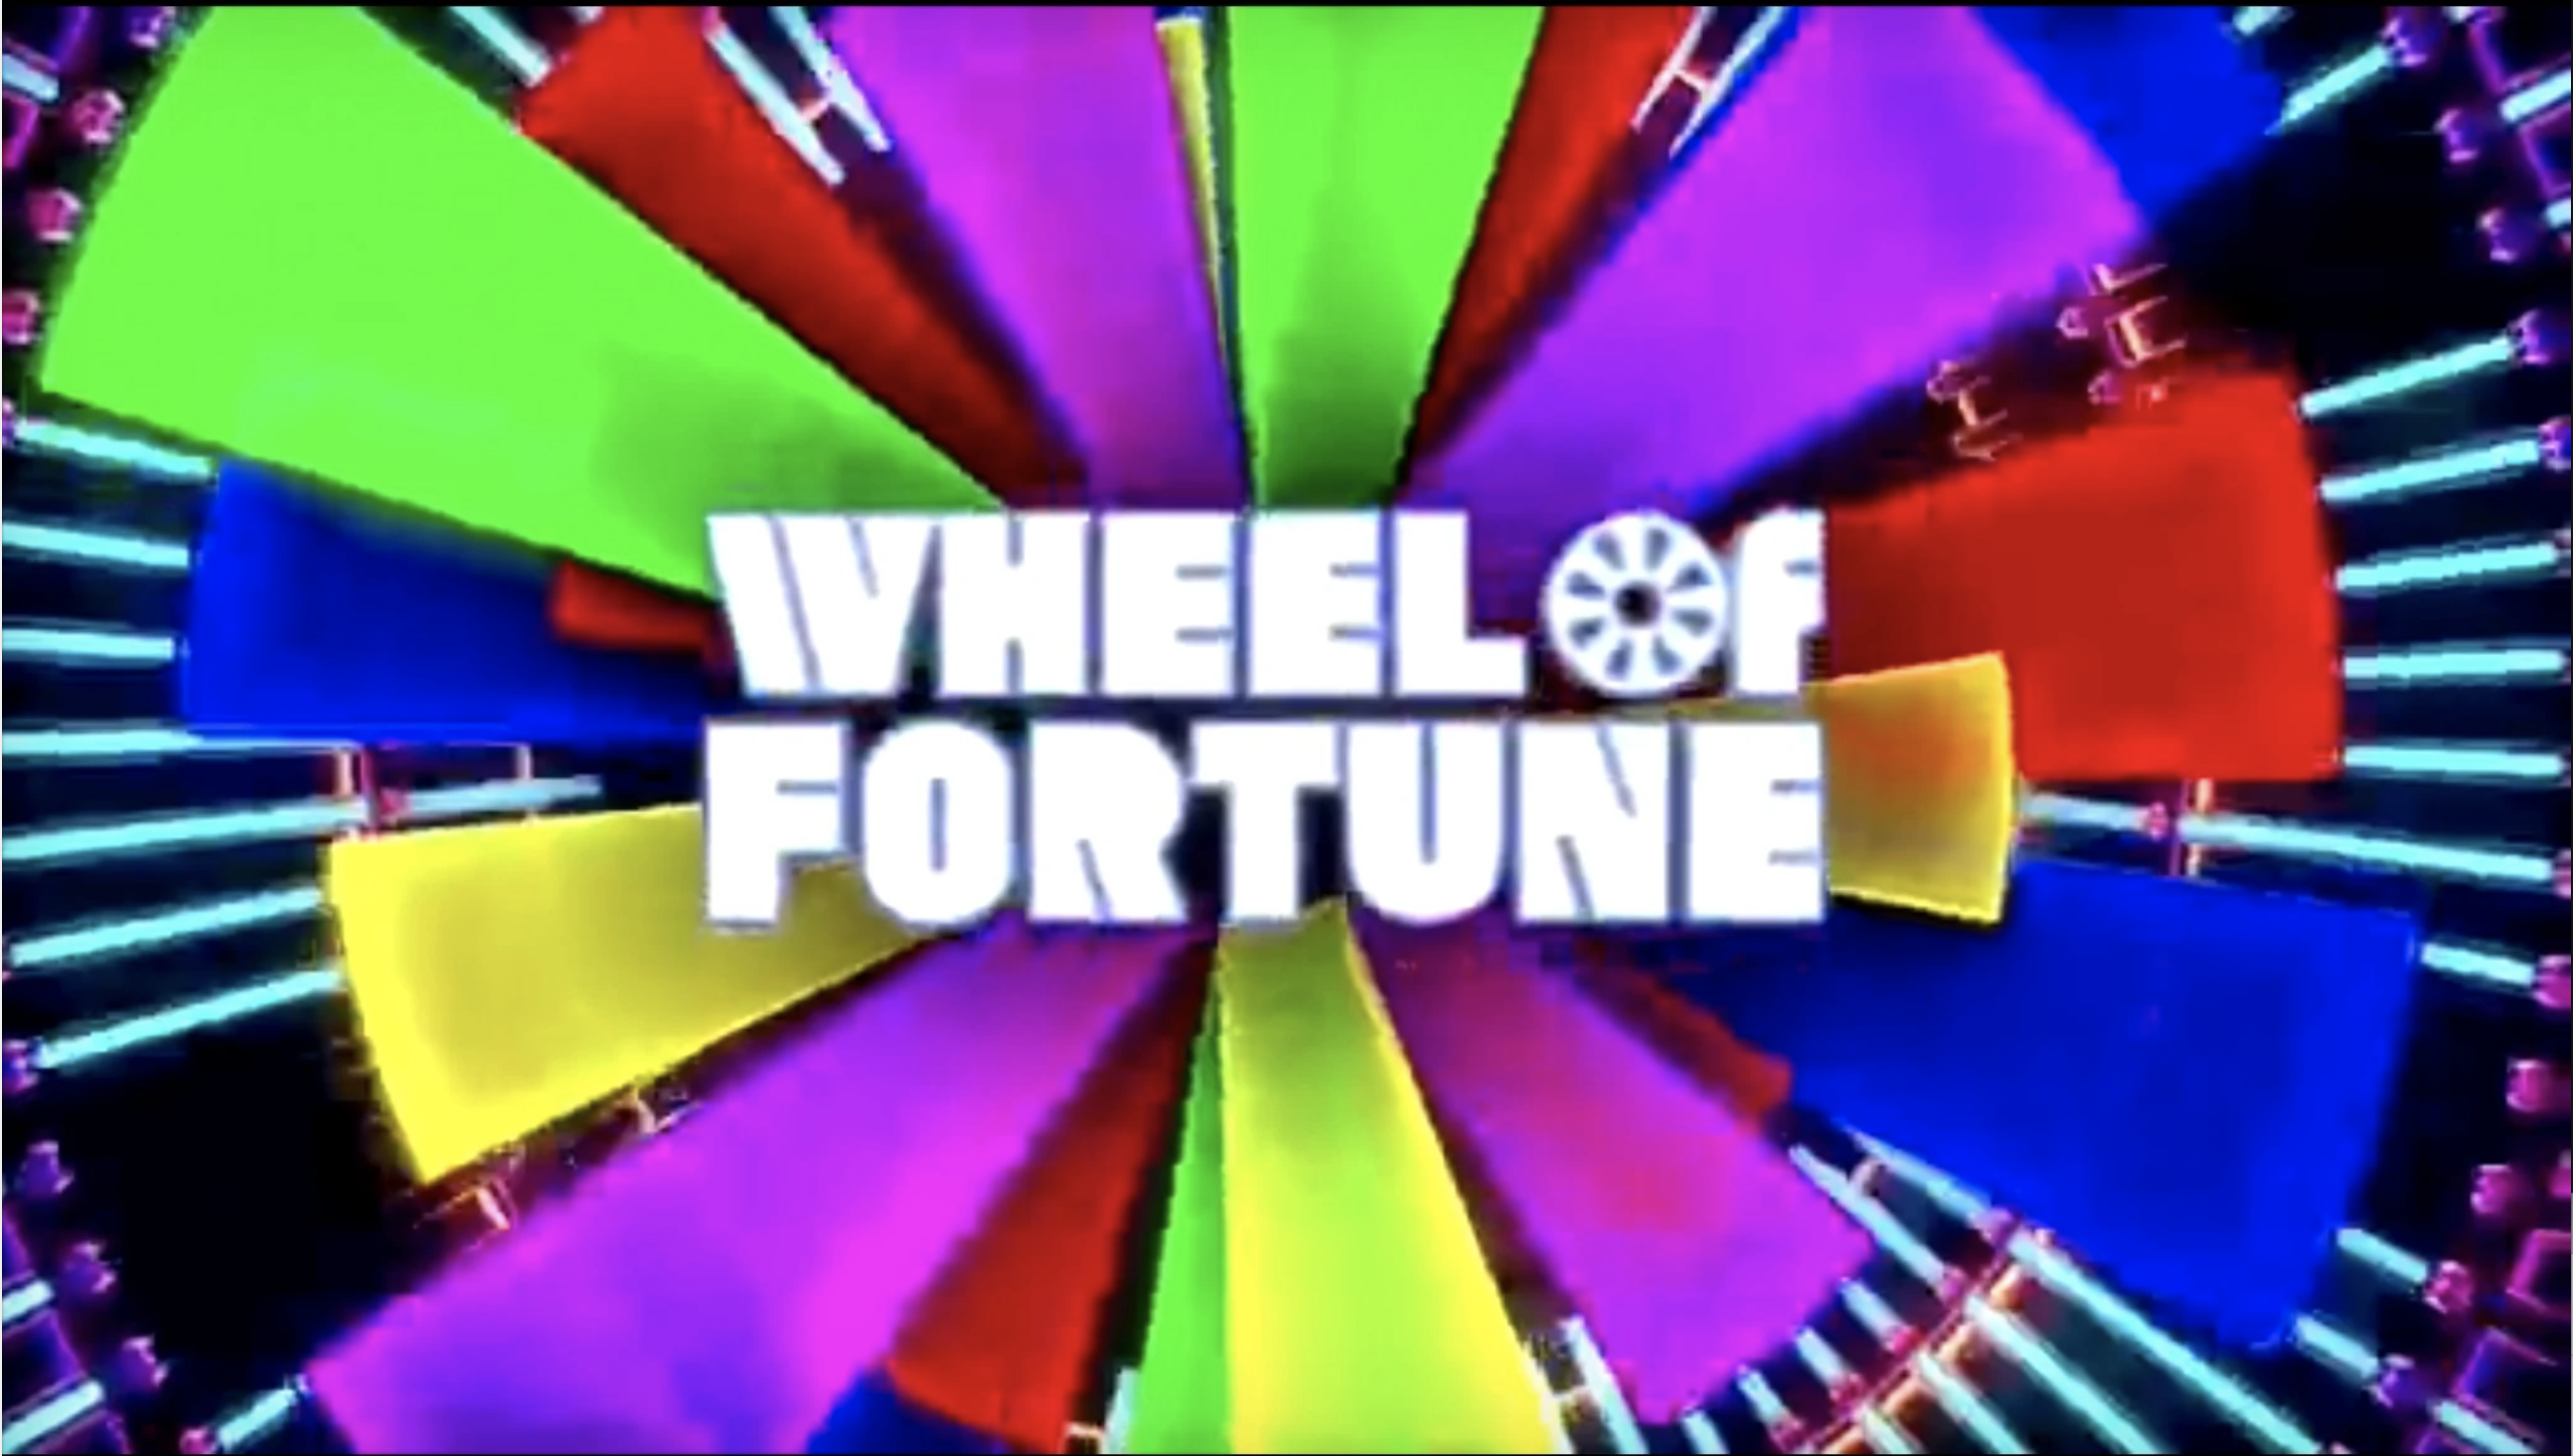 Wheel Of Fortune Partially Lost Episodes And Cut Material Of Game Show 1975 Present The Lost Media Wiki